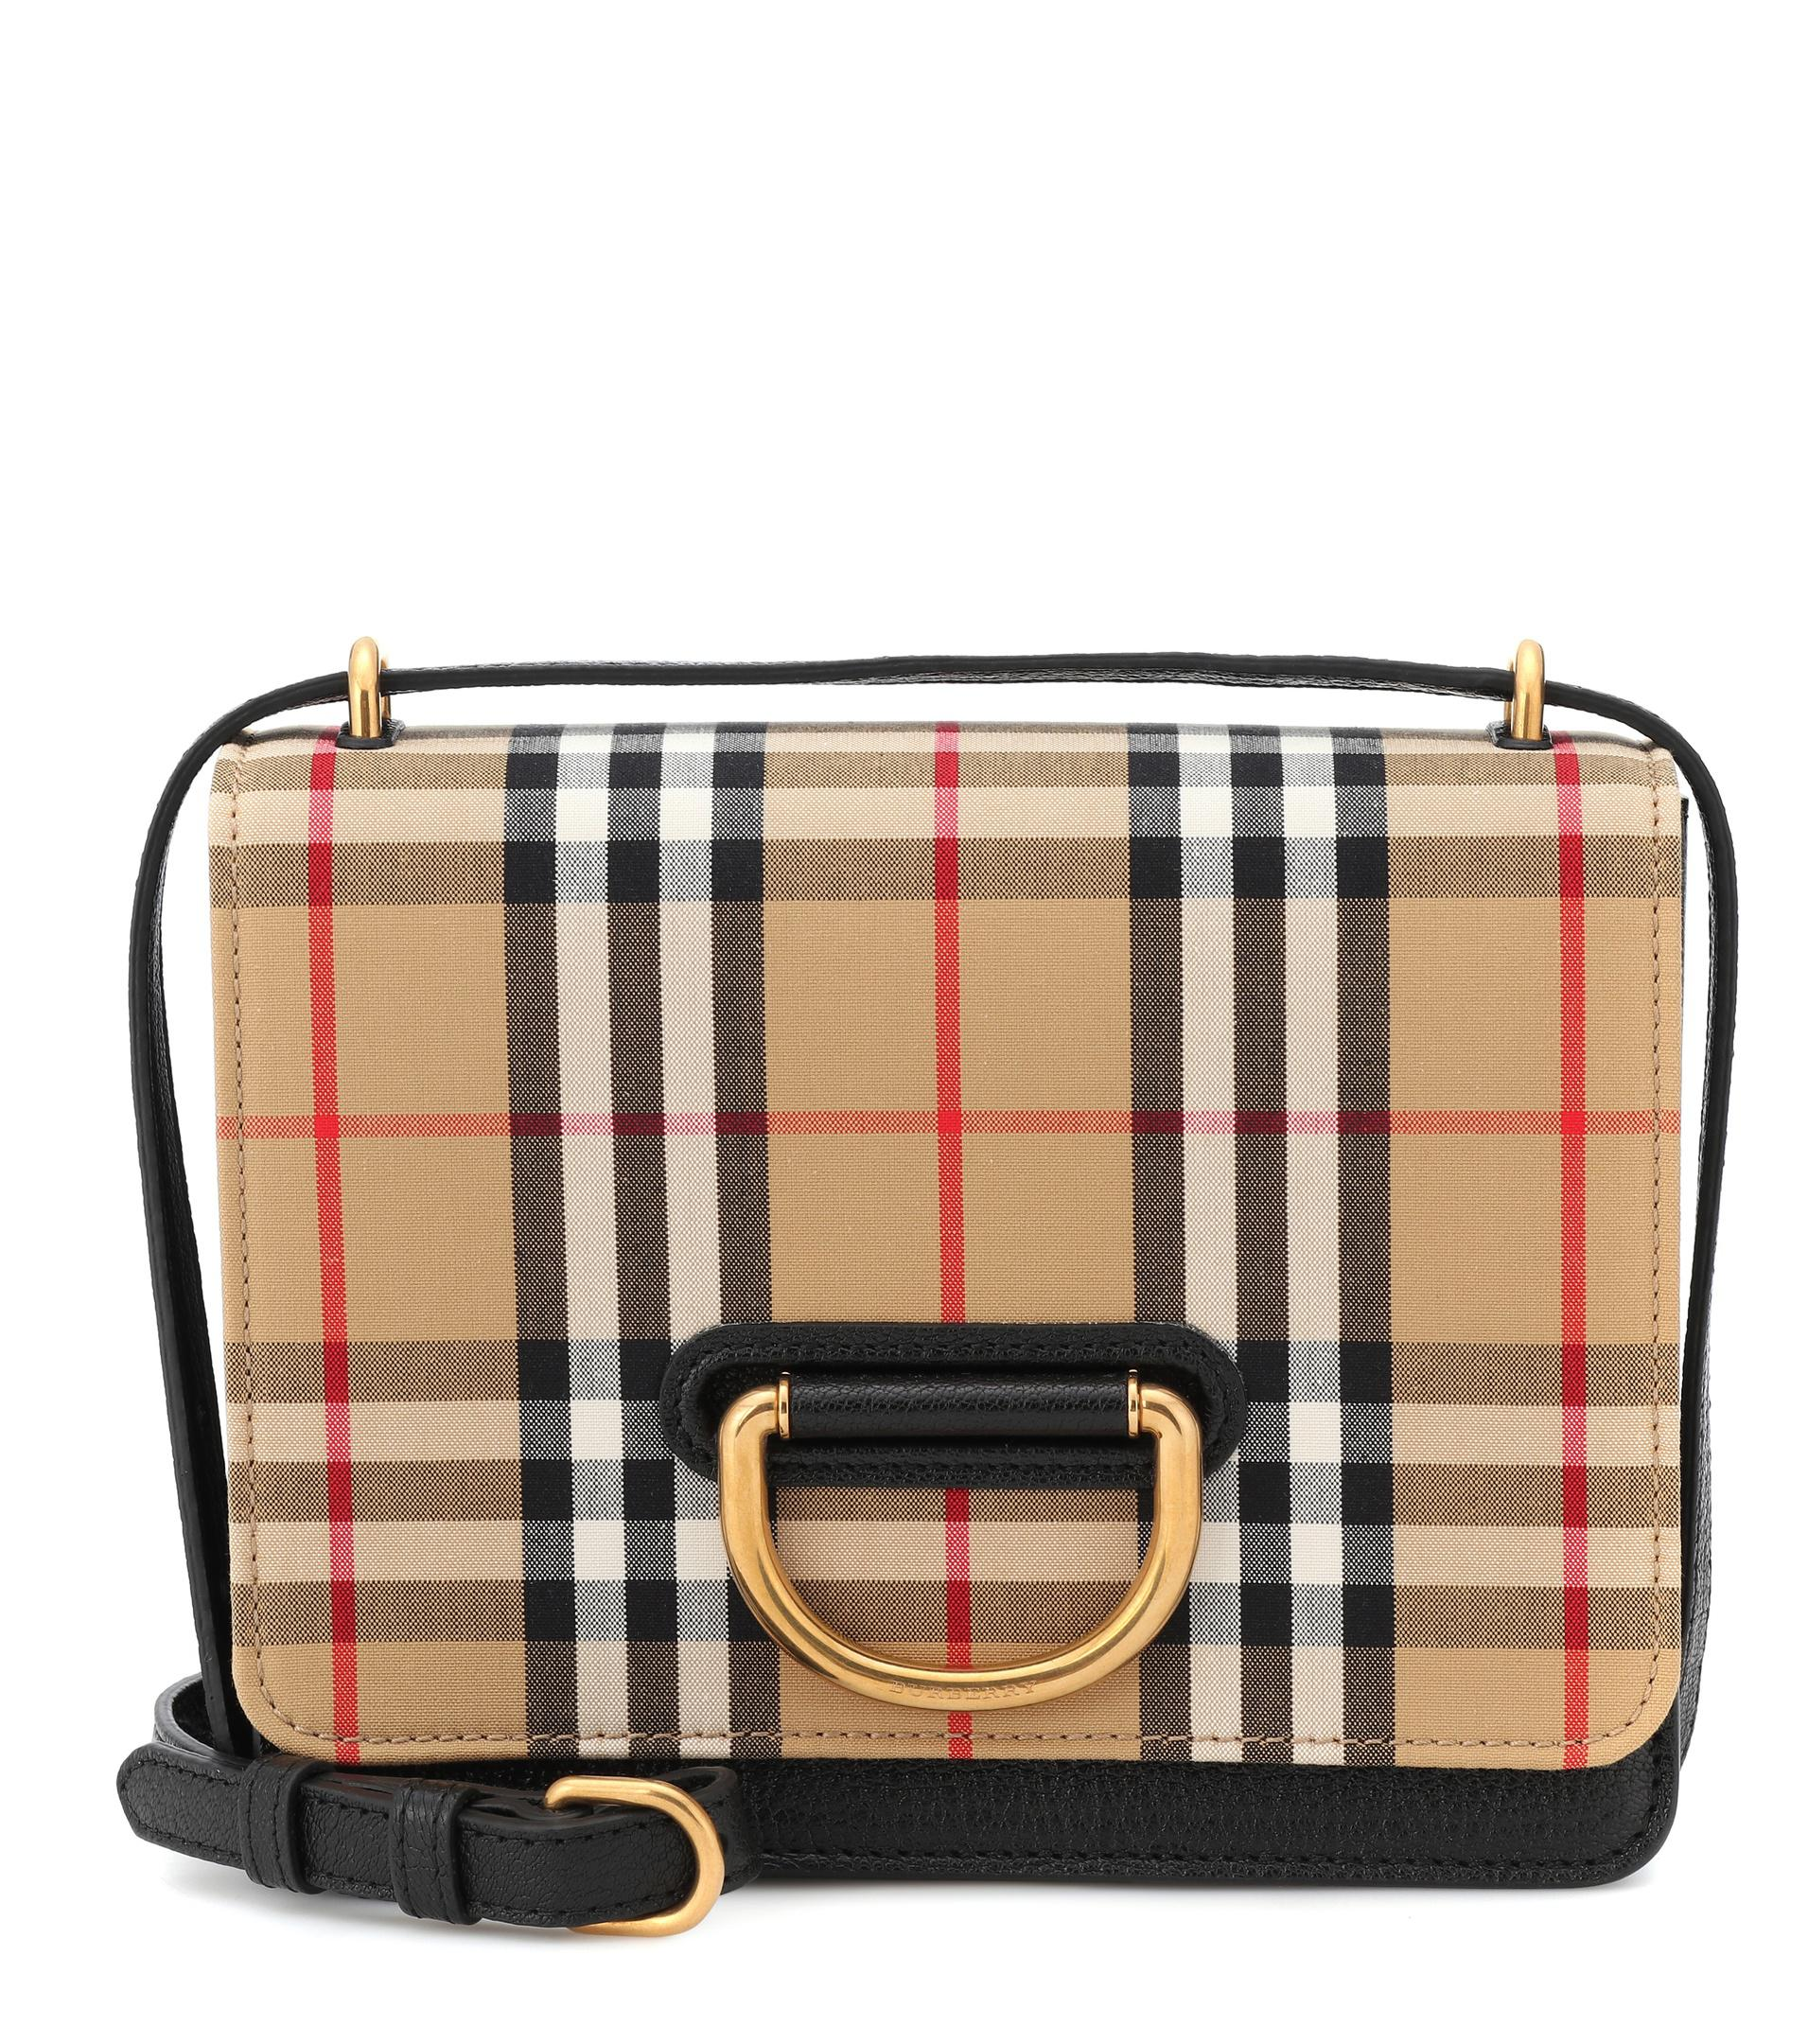 7fbb3dabb153 Lyst - Burberry Small Vintage Check Crossbody Bag in Black